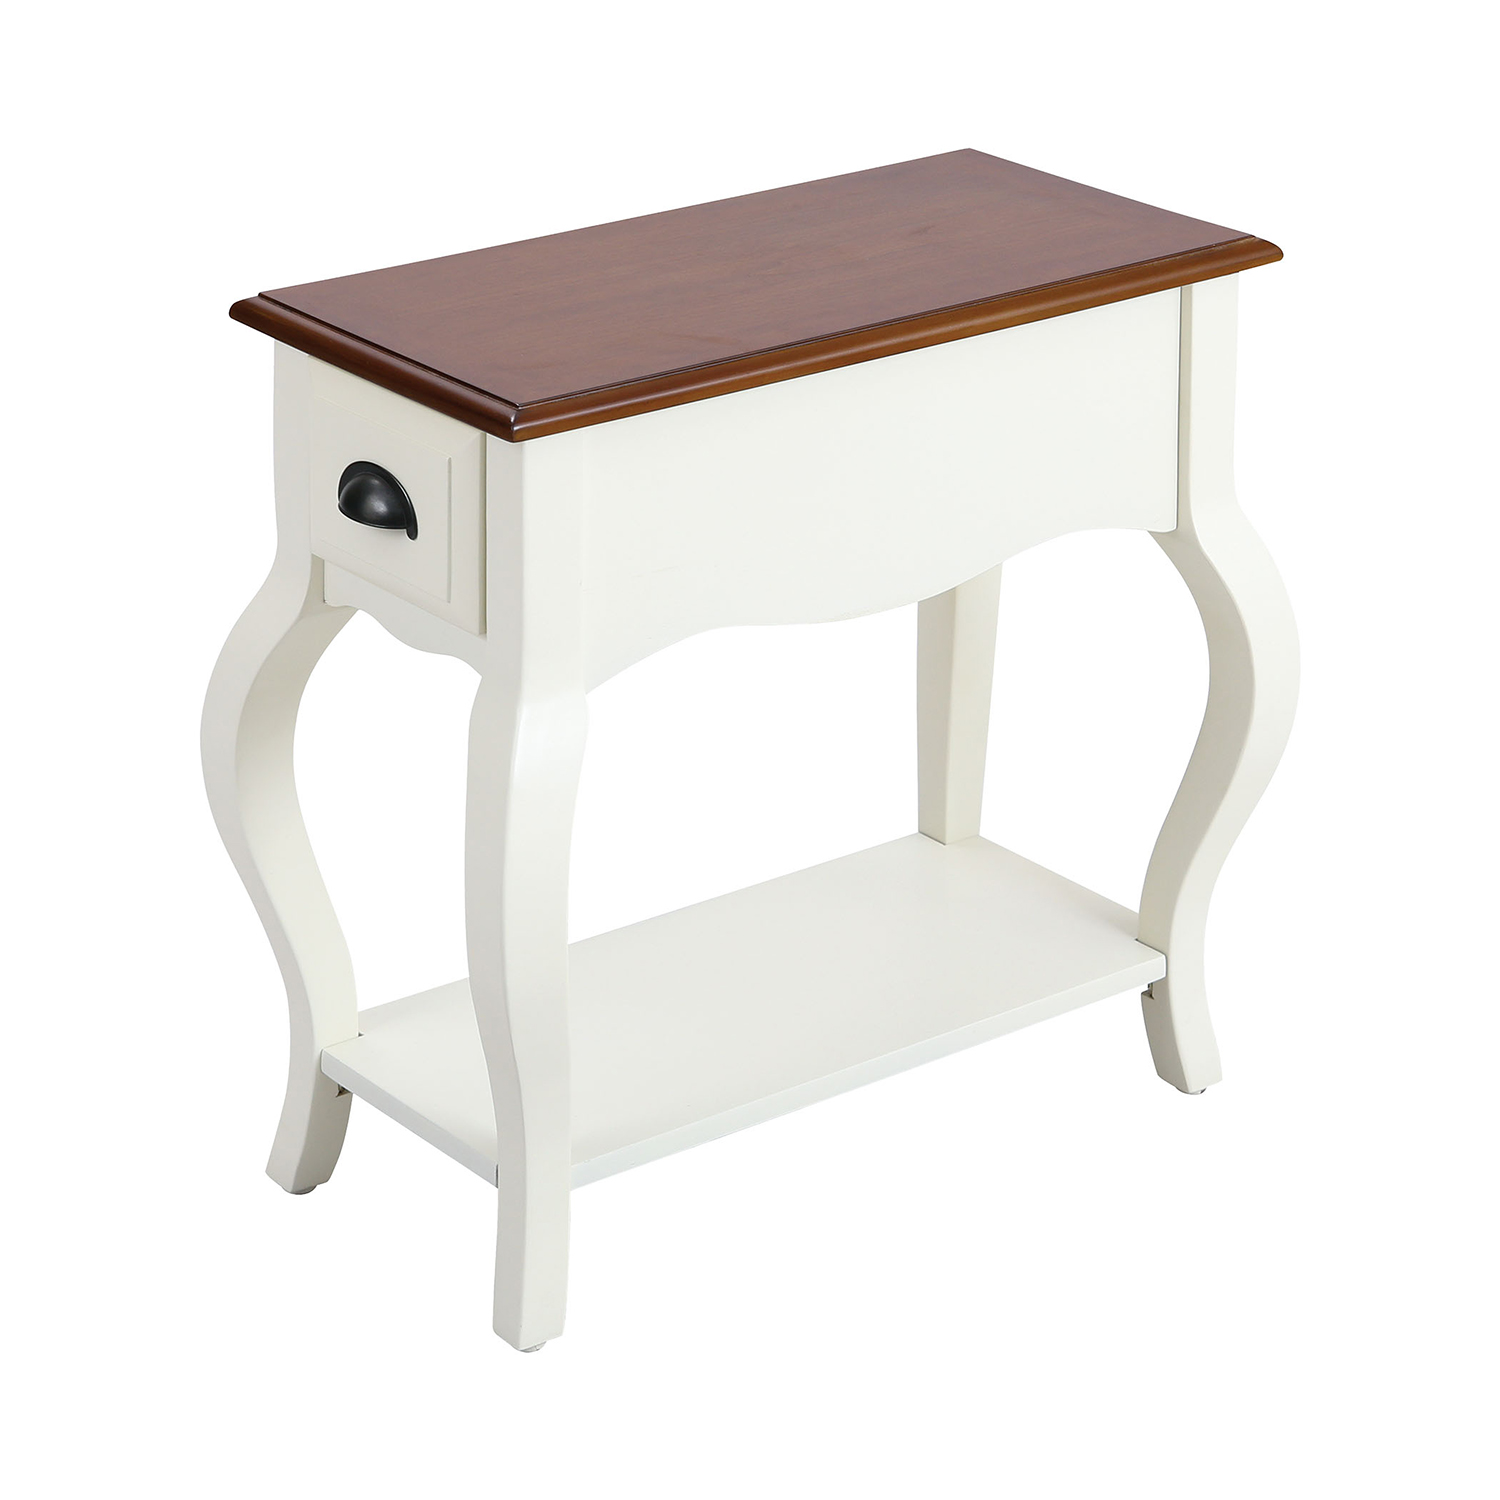 stein world arroyo grande antique white and bronze accent table hover zoom lobby furniture office wall cabinets lucite dining chairs small oak side wood pottery barn high pipe